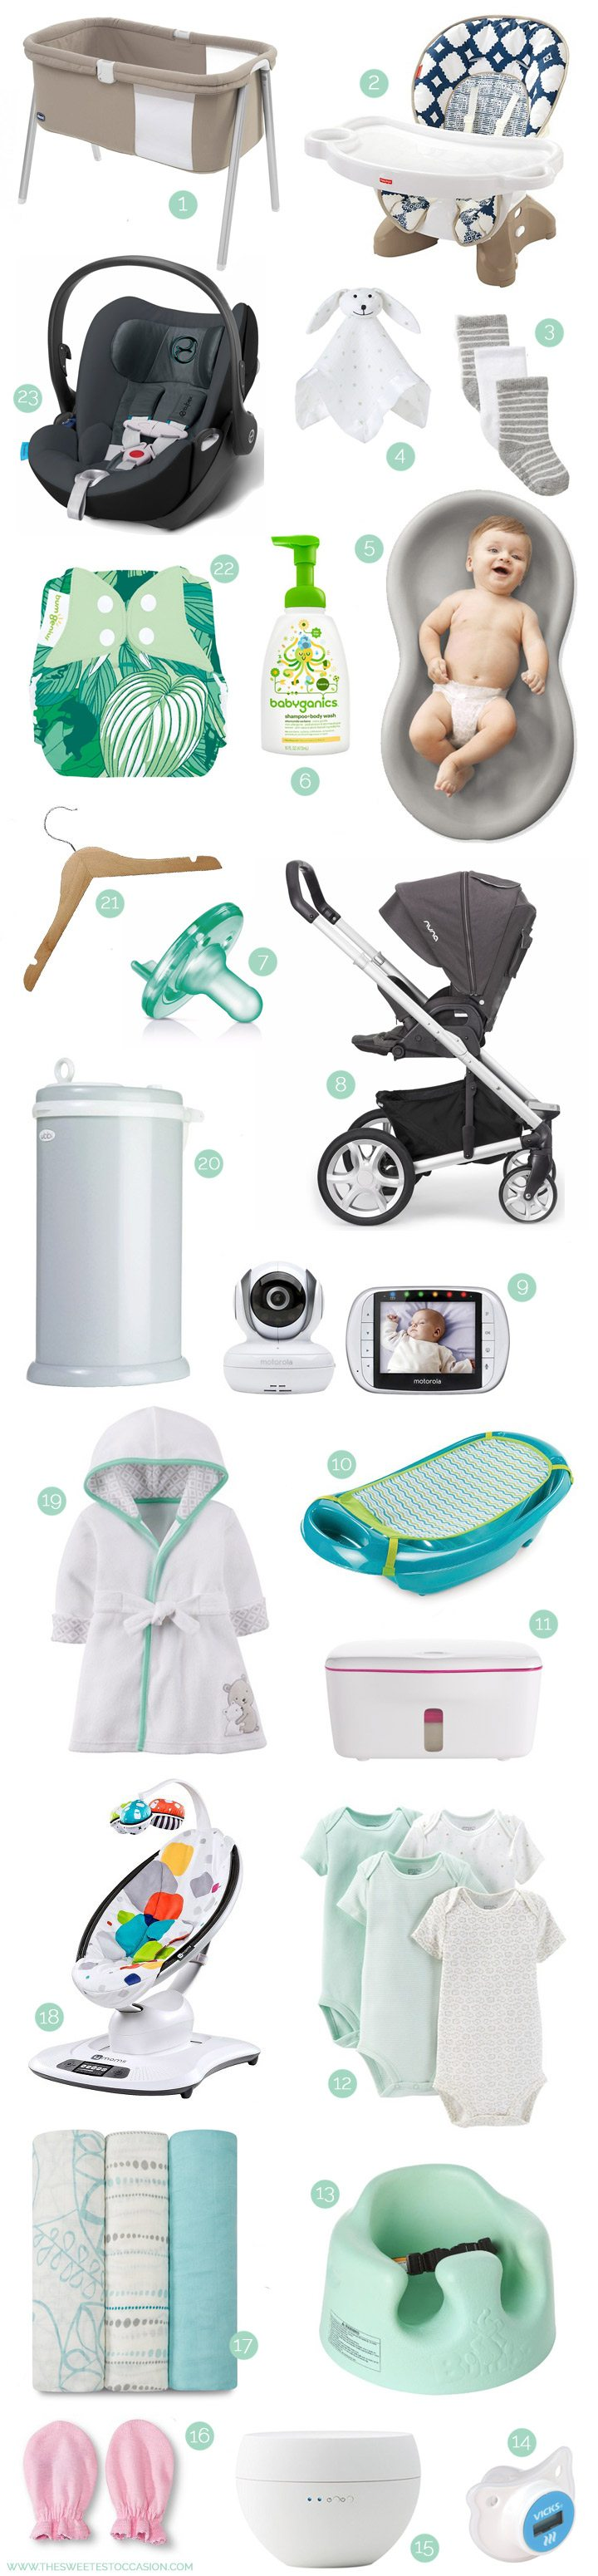 Baby Registry Essentials from @cydconverse